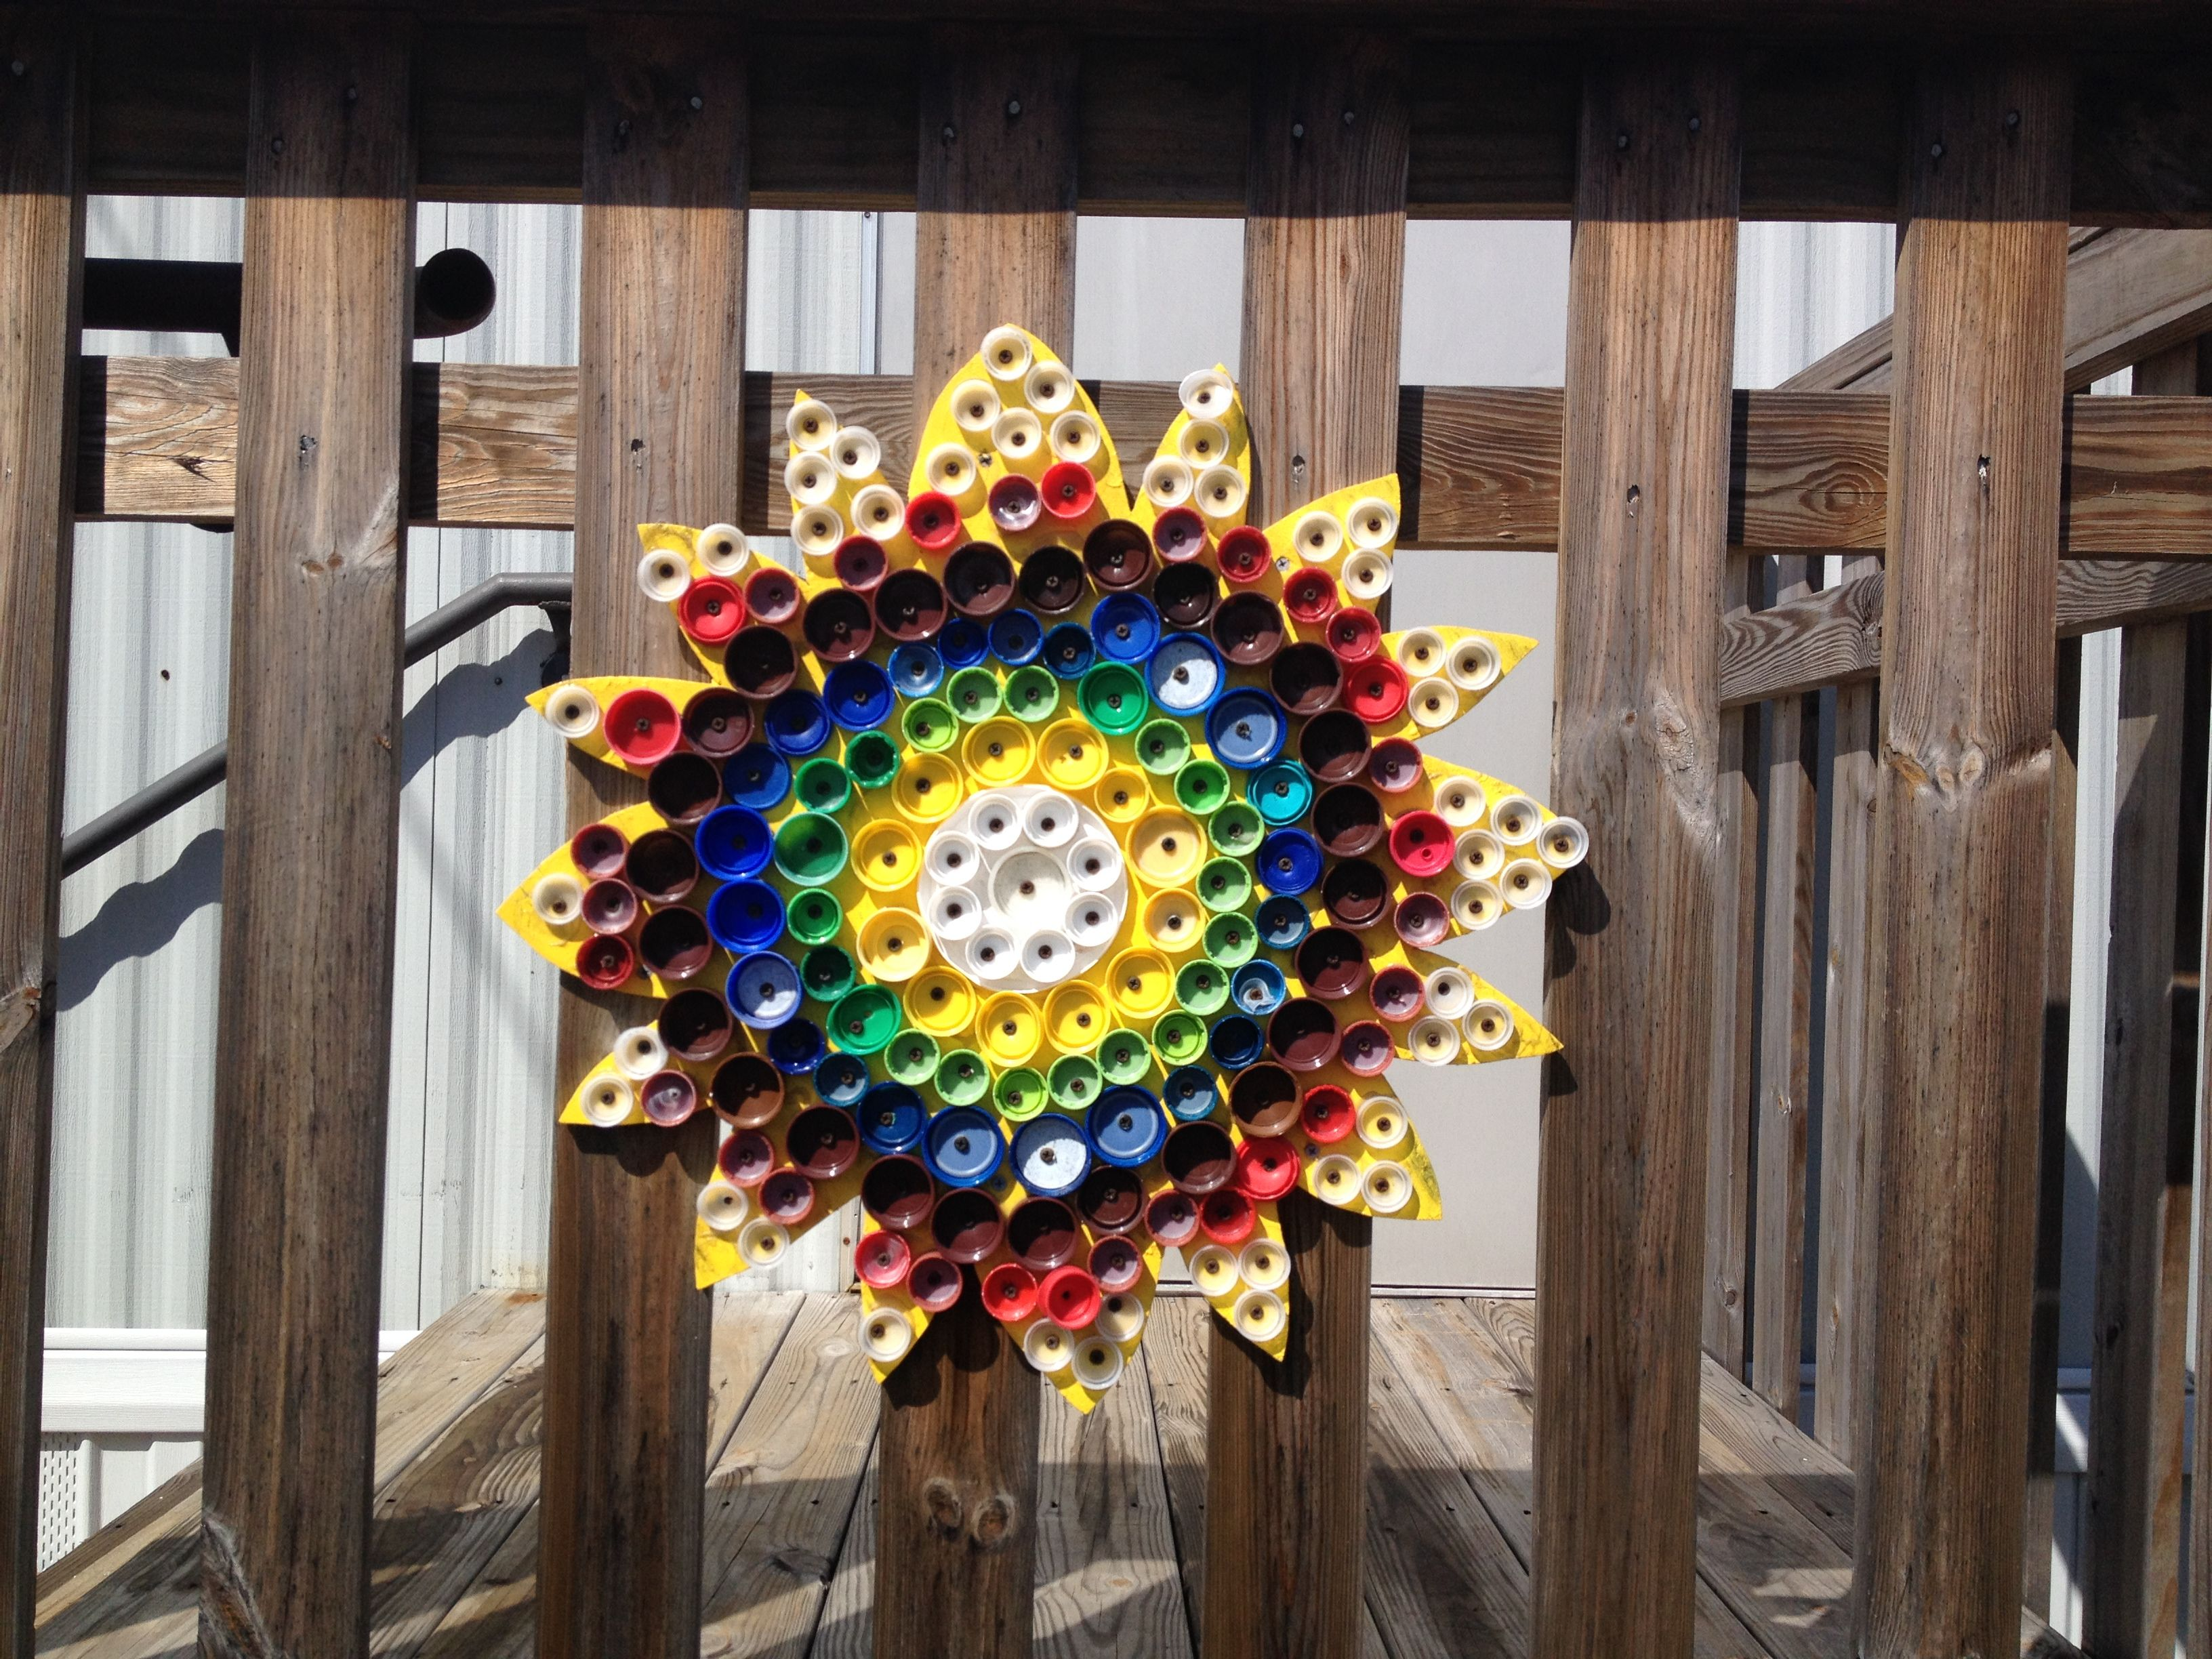 Another Crafty Idea From Pinchbeck Elementary School In